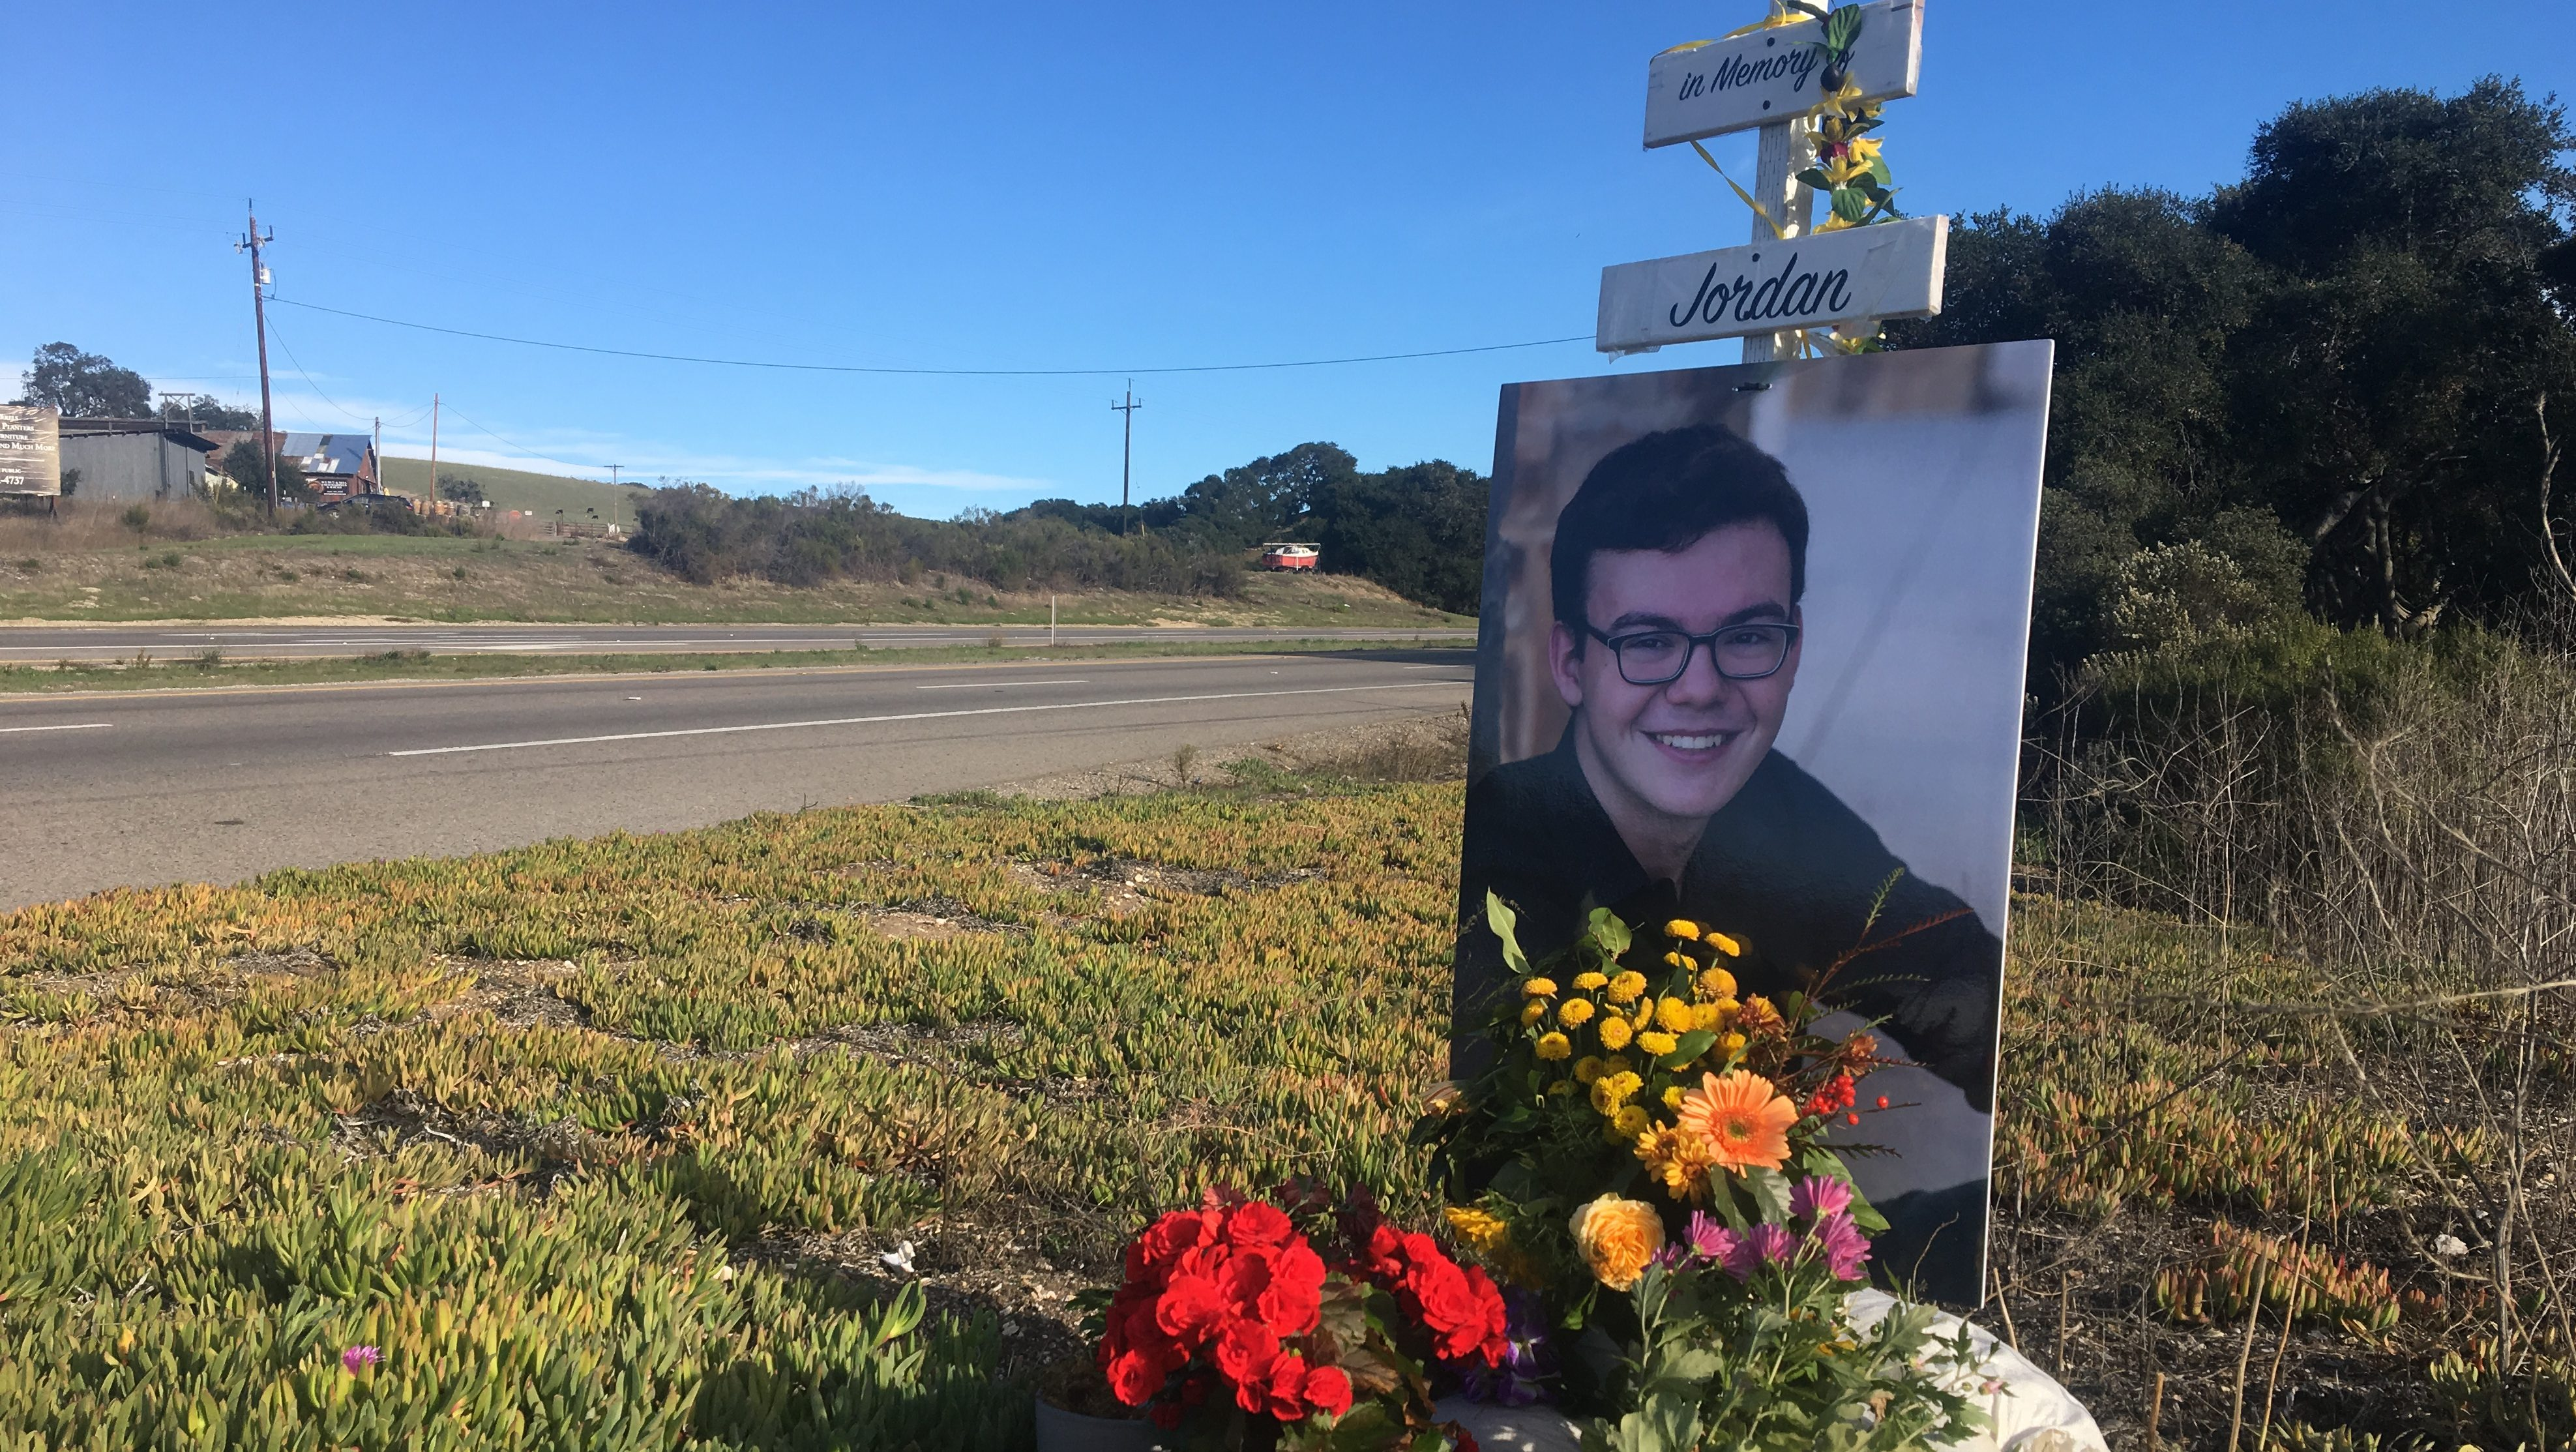 A memorial placed along Highway 101 at El Campo where Jordan grant was hit and killed in October.